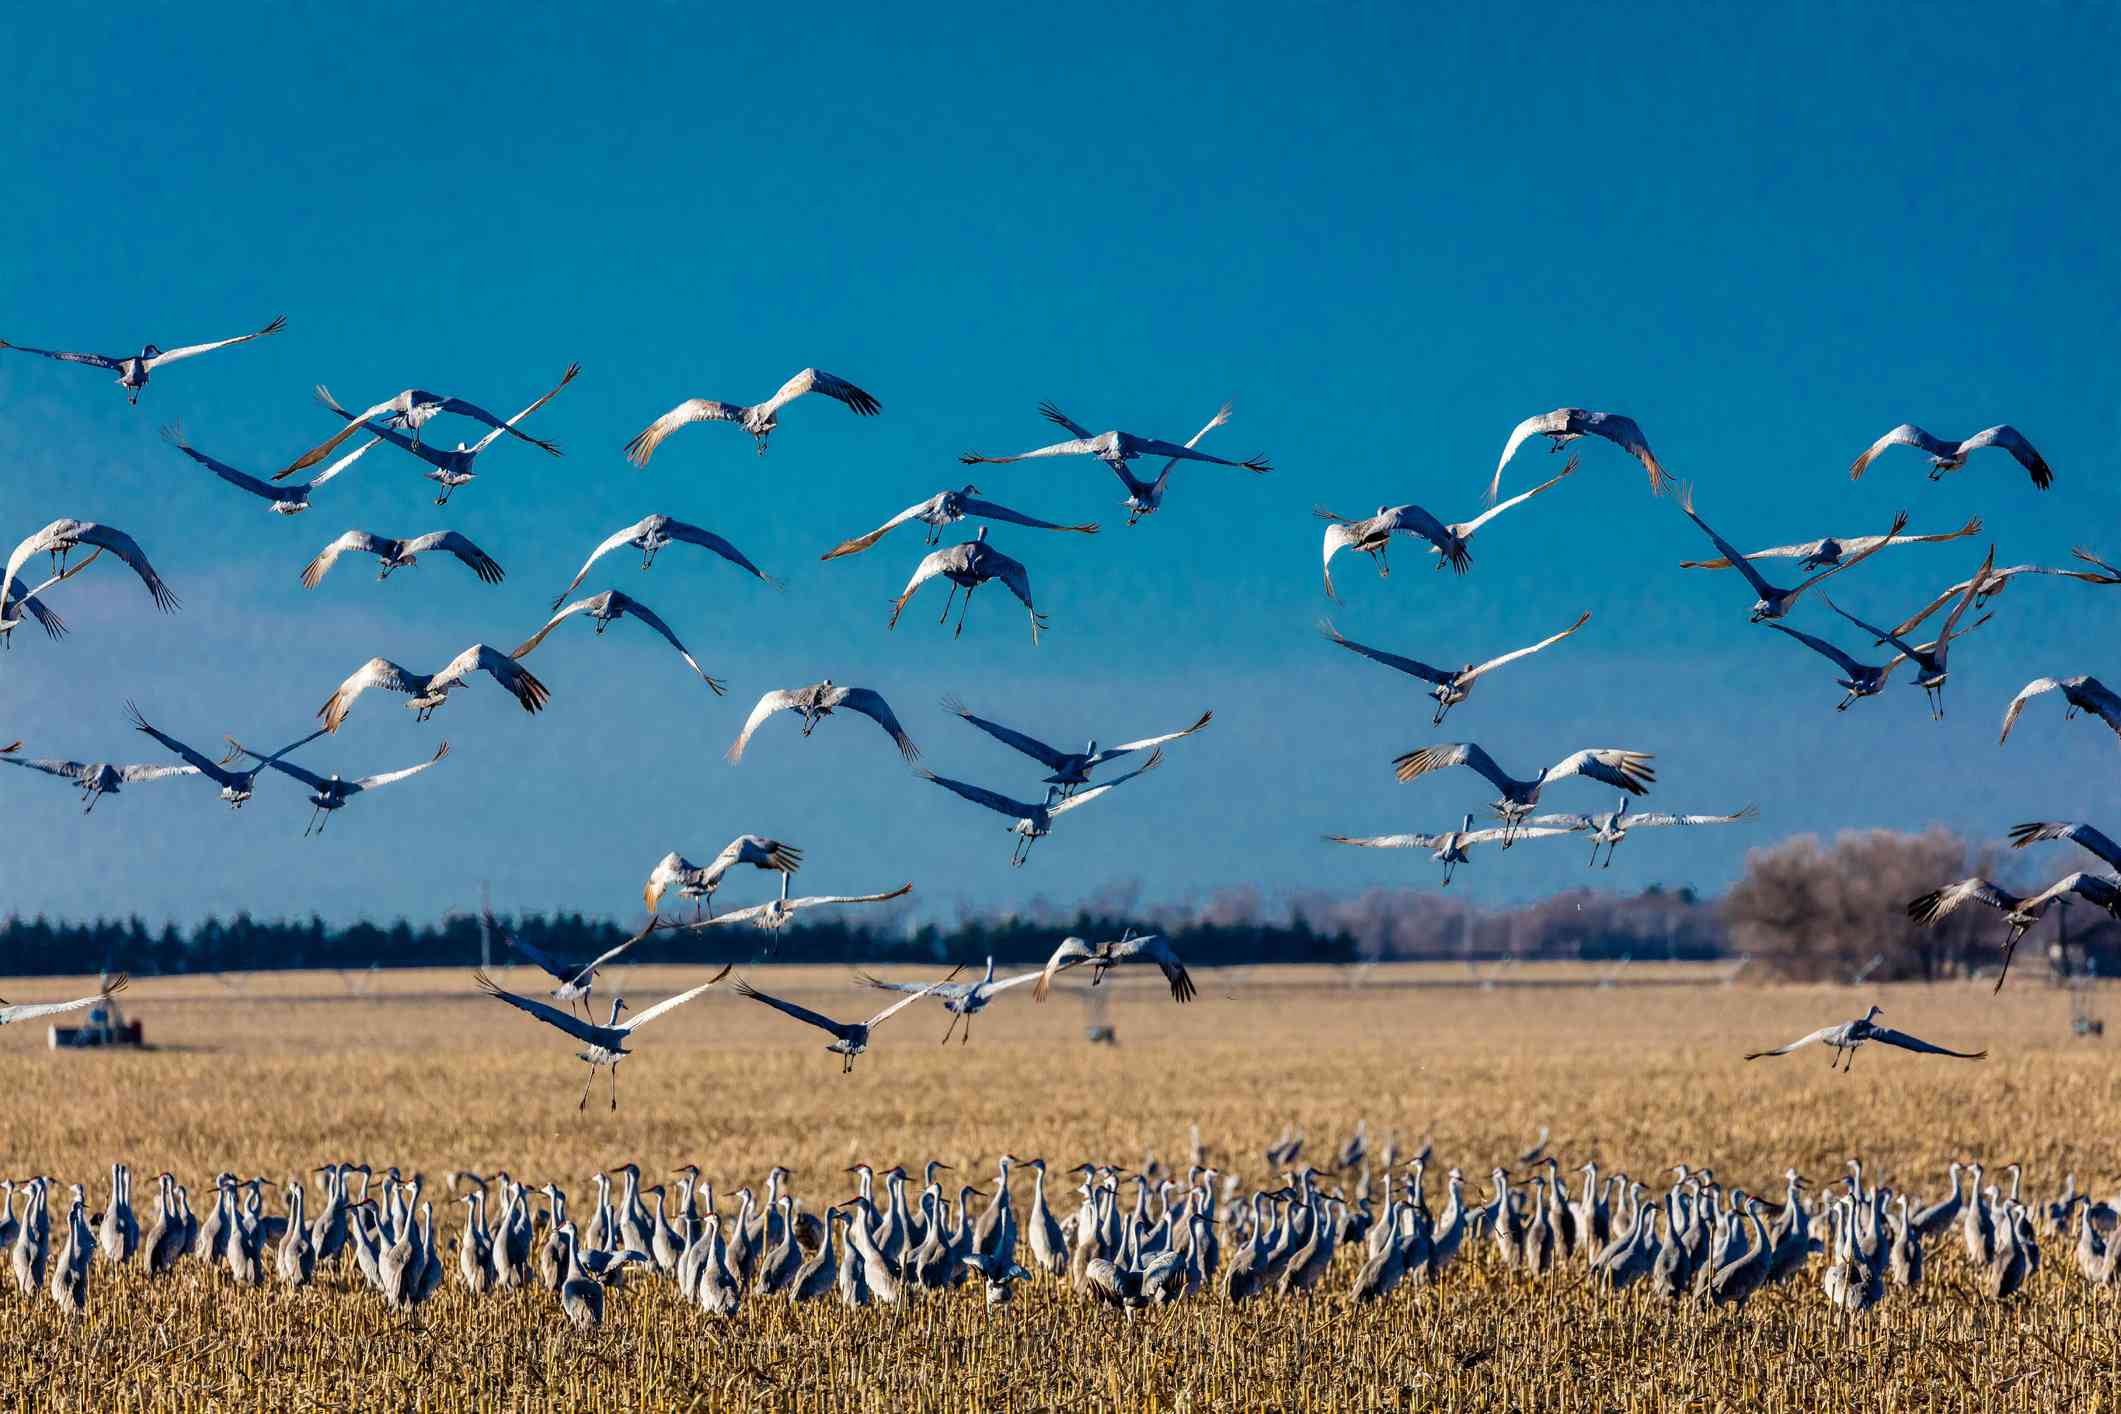 a large flock of sandhill cranes standing in a cornfield, while others take flight over the cornfield with a bright blue sky in the background in Platte River, Nebraska